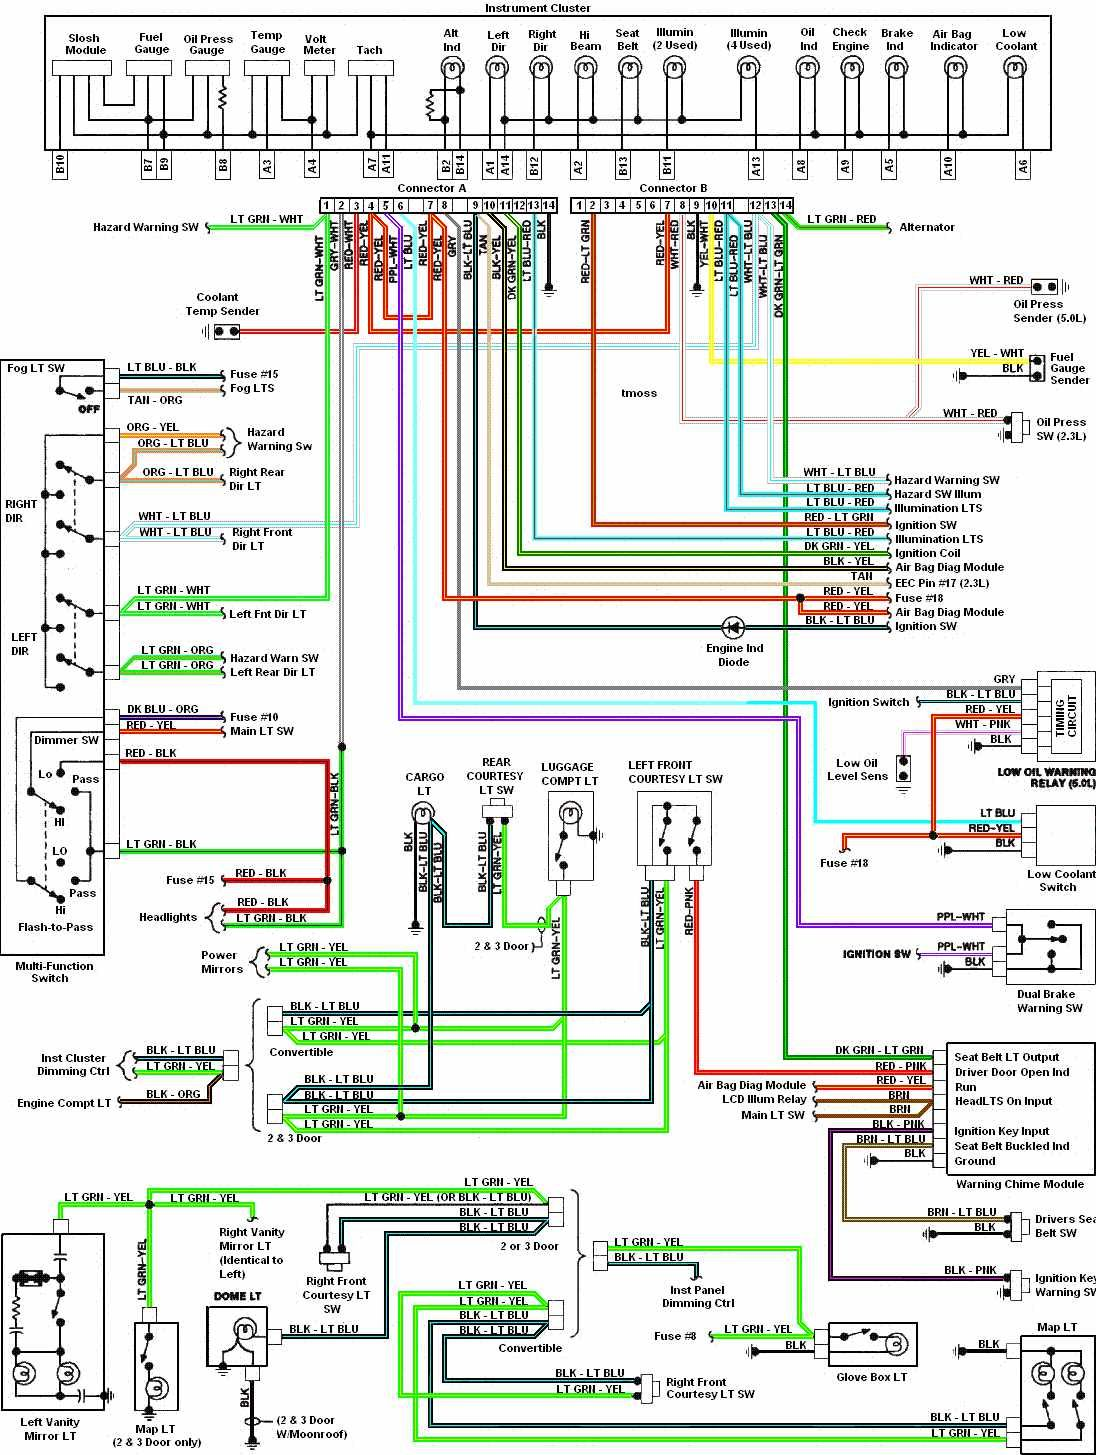 small resolution of 2003 camry fuse box diagram under dash mustang images gallery 2003 mustang gt gauge wiring